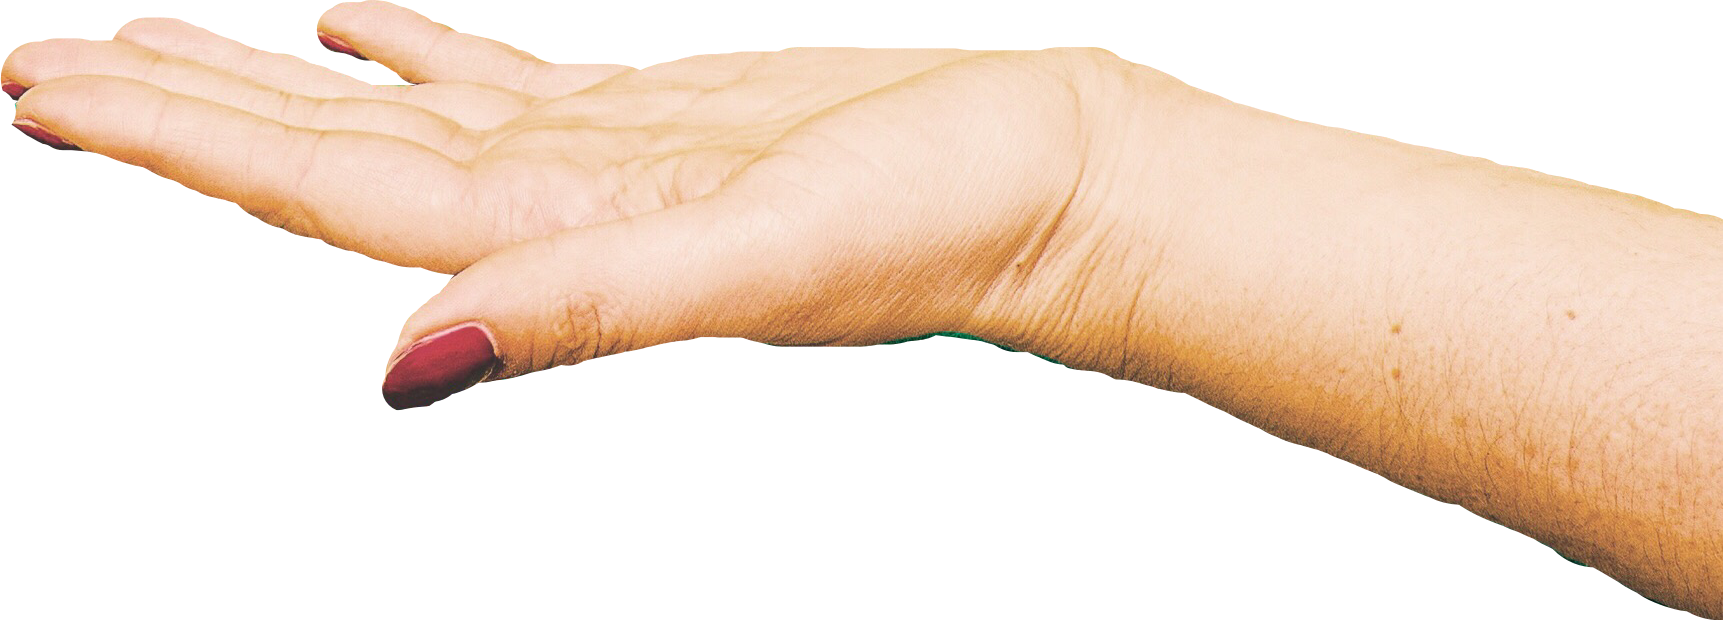 Hand reaching out png. Reachingout fingers useful handing